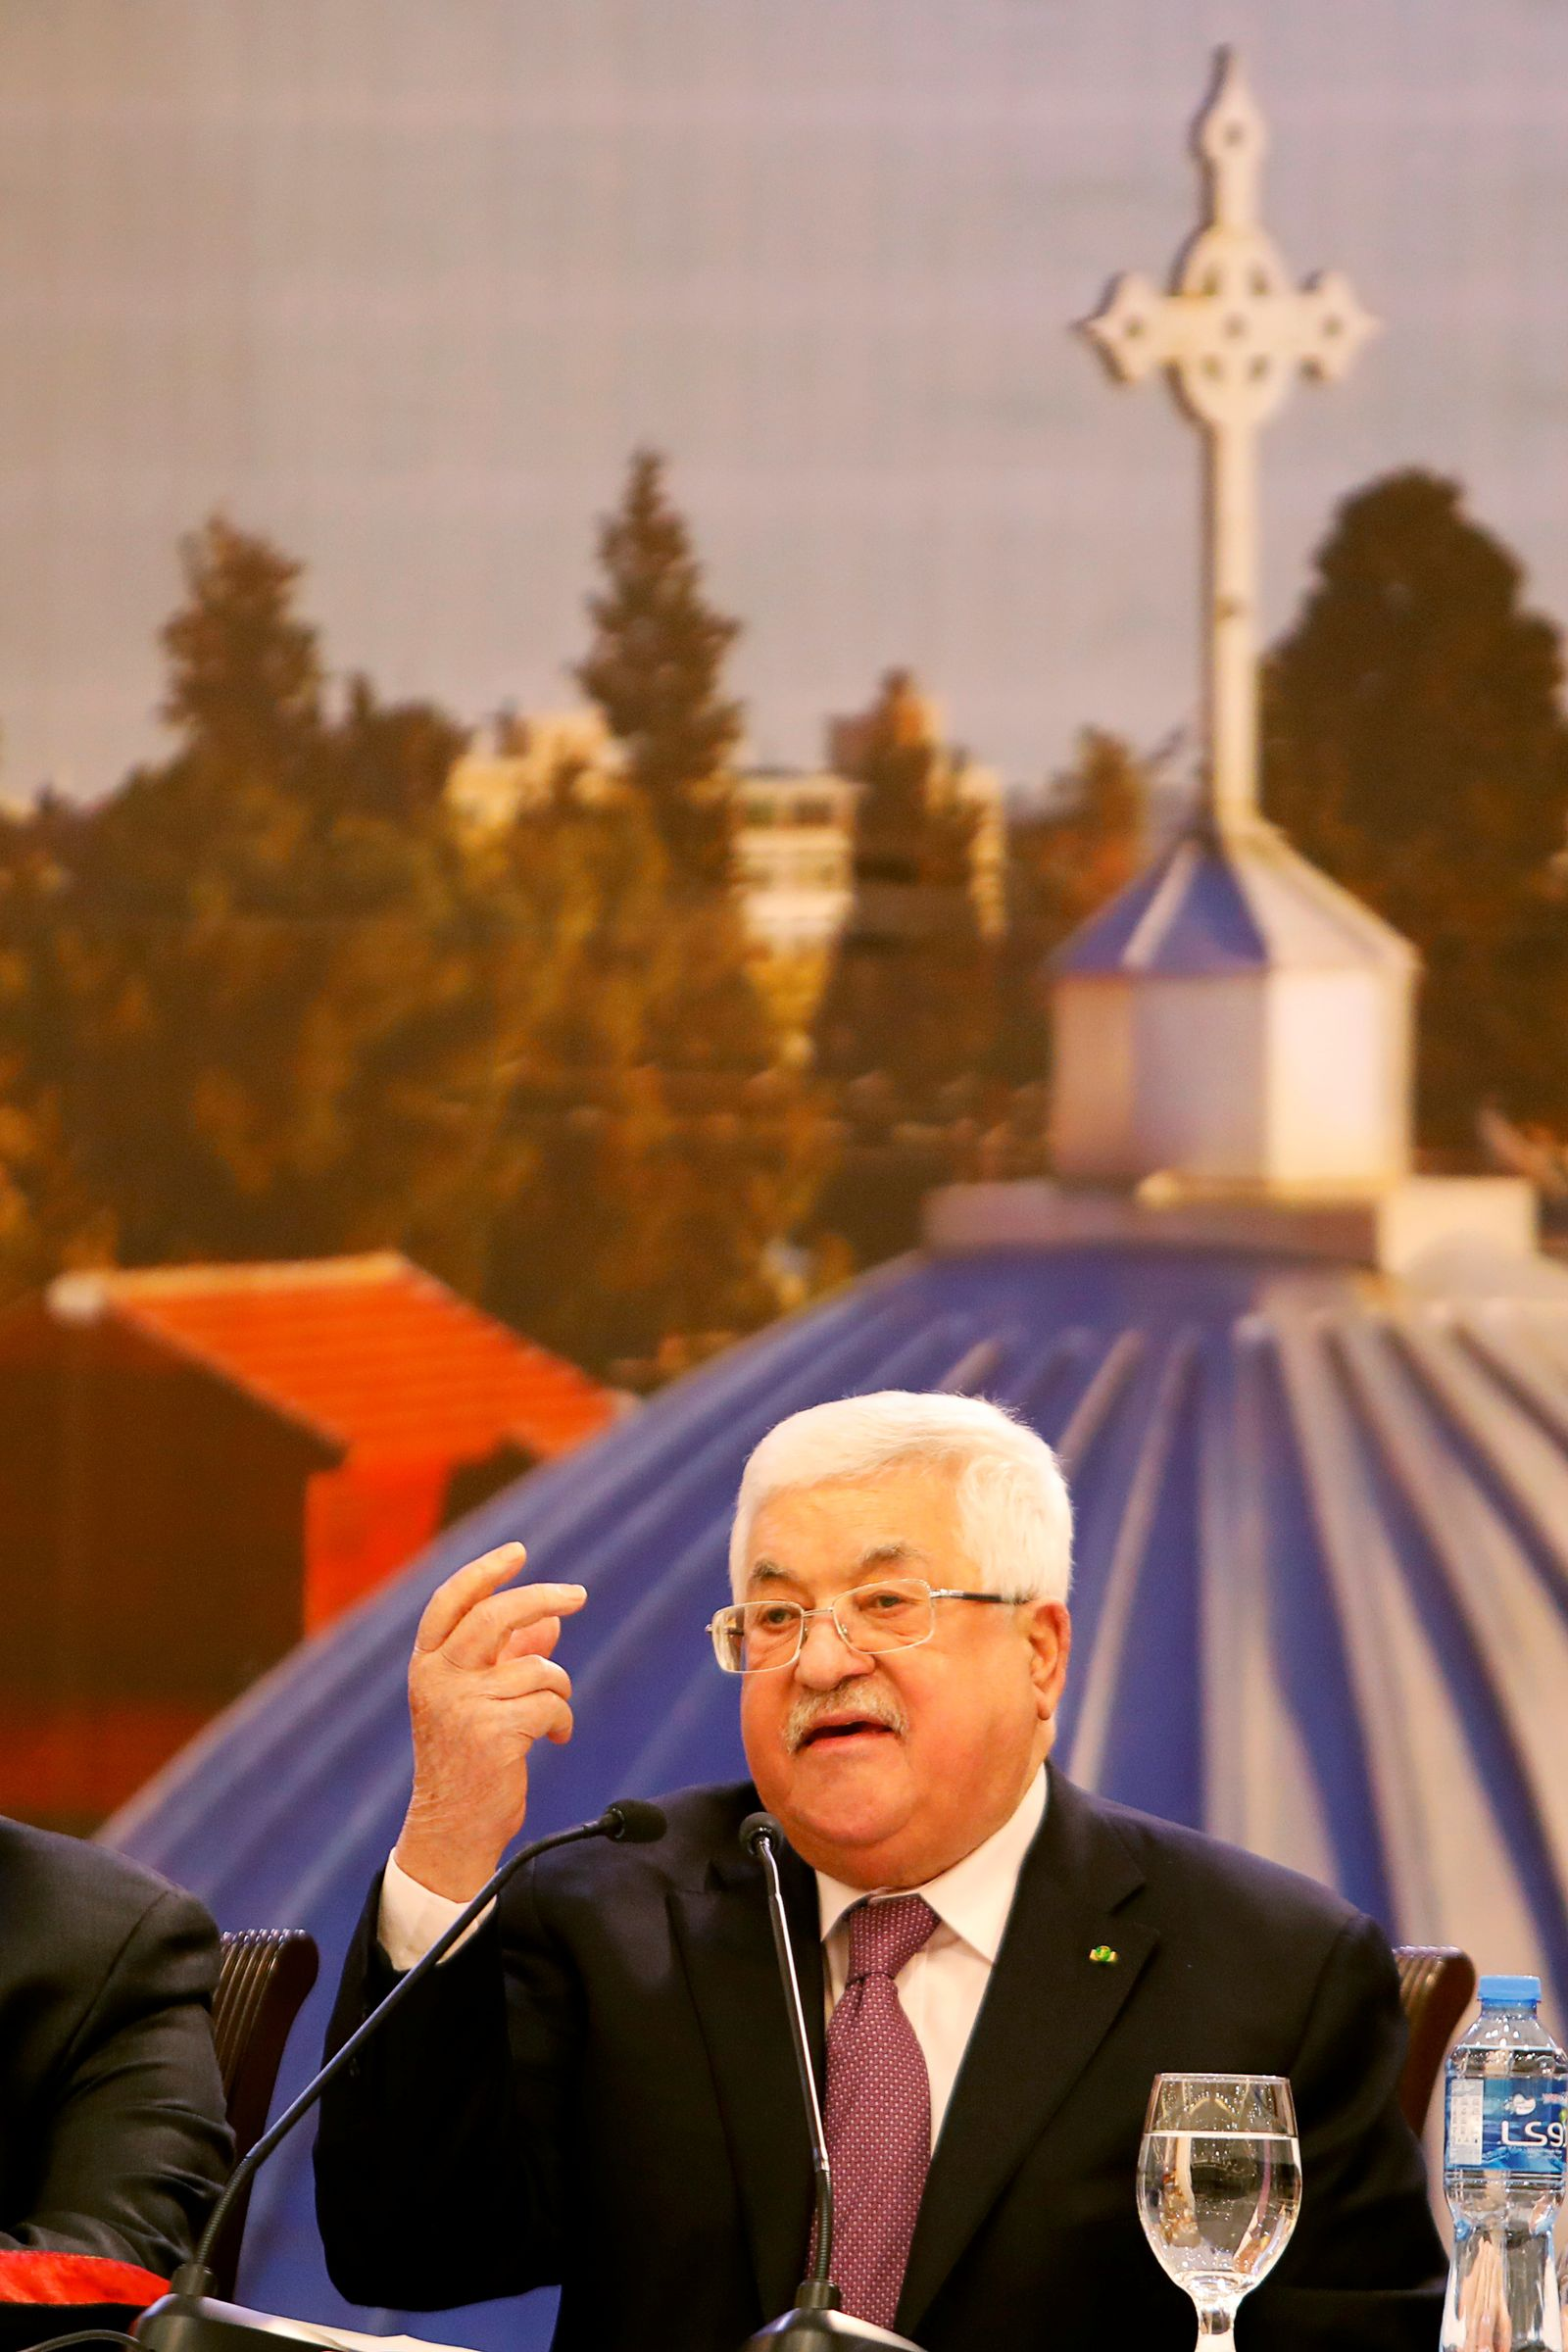 Palestinian President Mahmoud Abbas gestures as he delivers a speech following the announcement by the U.S. President Donald Trump of the Mideast peace plan, in Ramallah in the Israeli-occupied West Bank